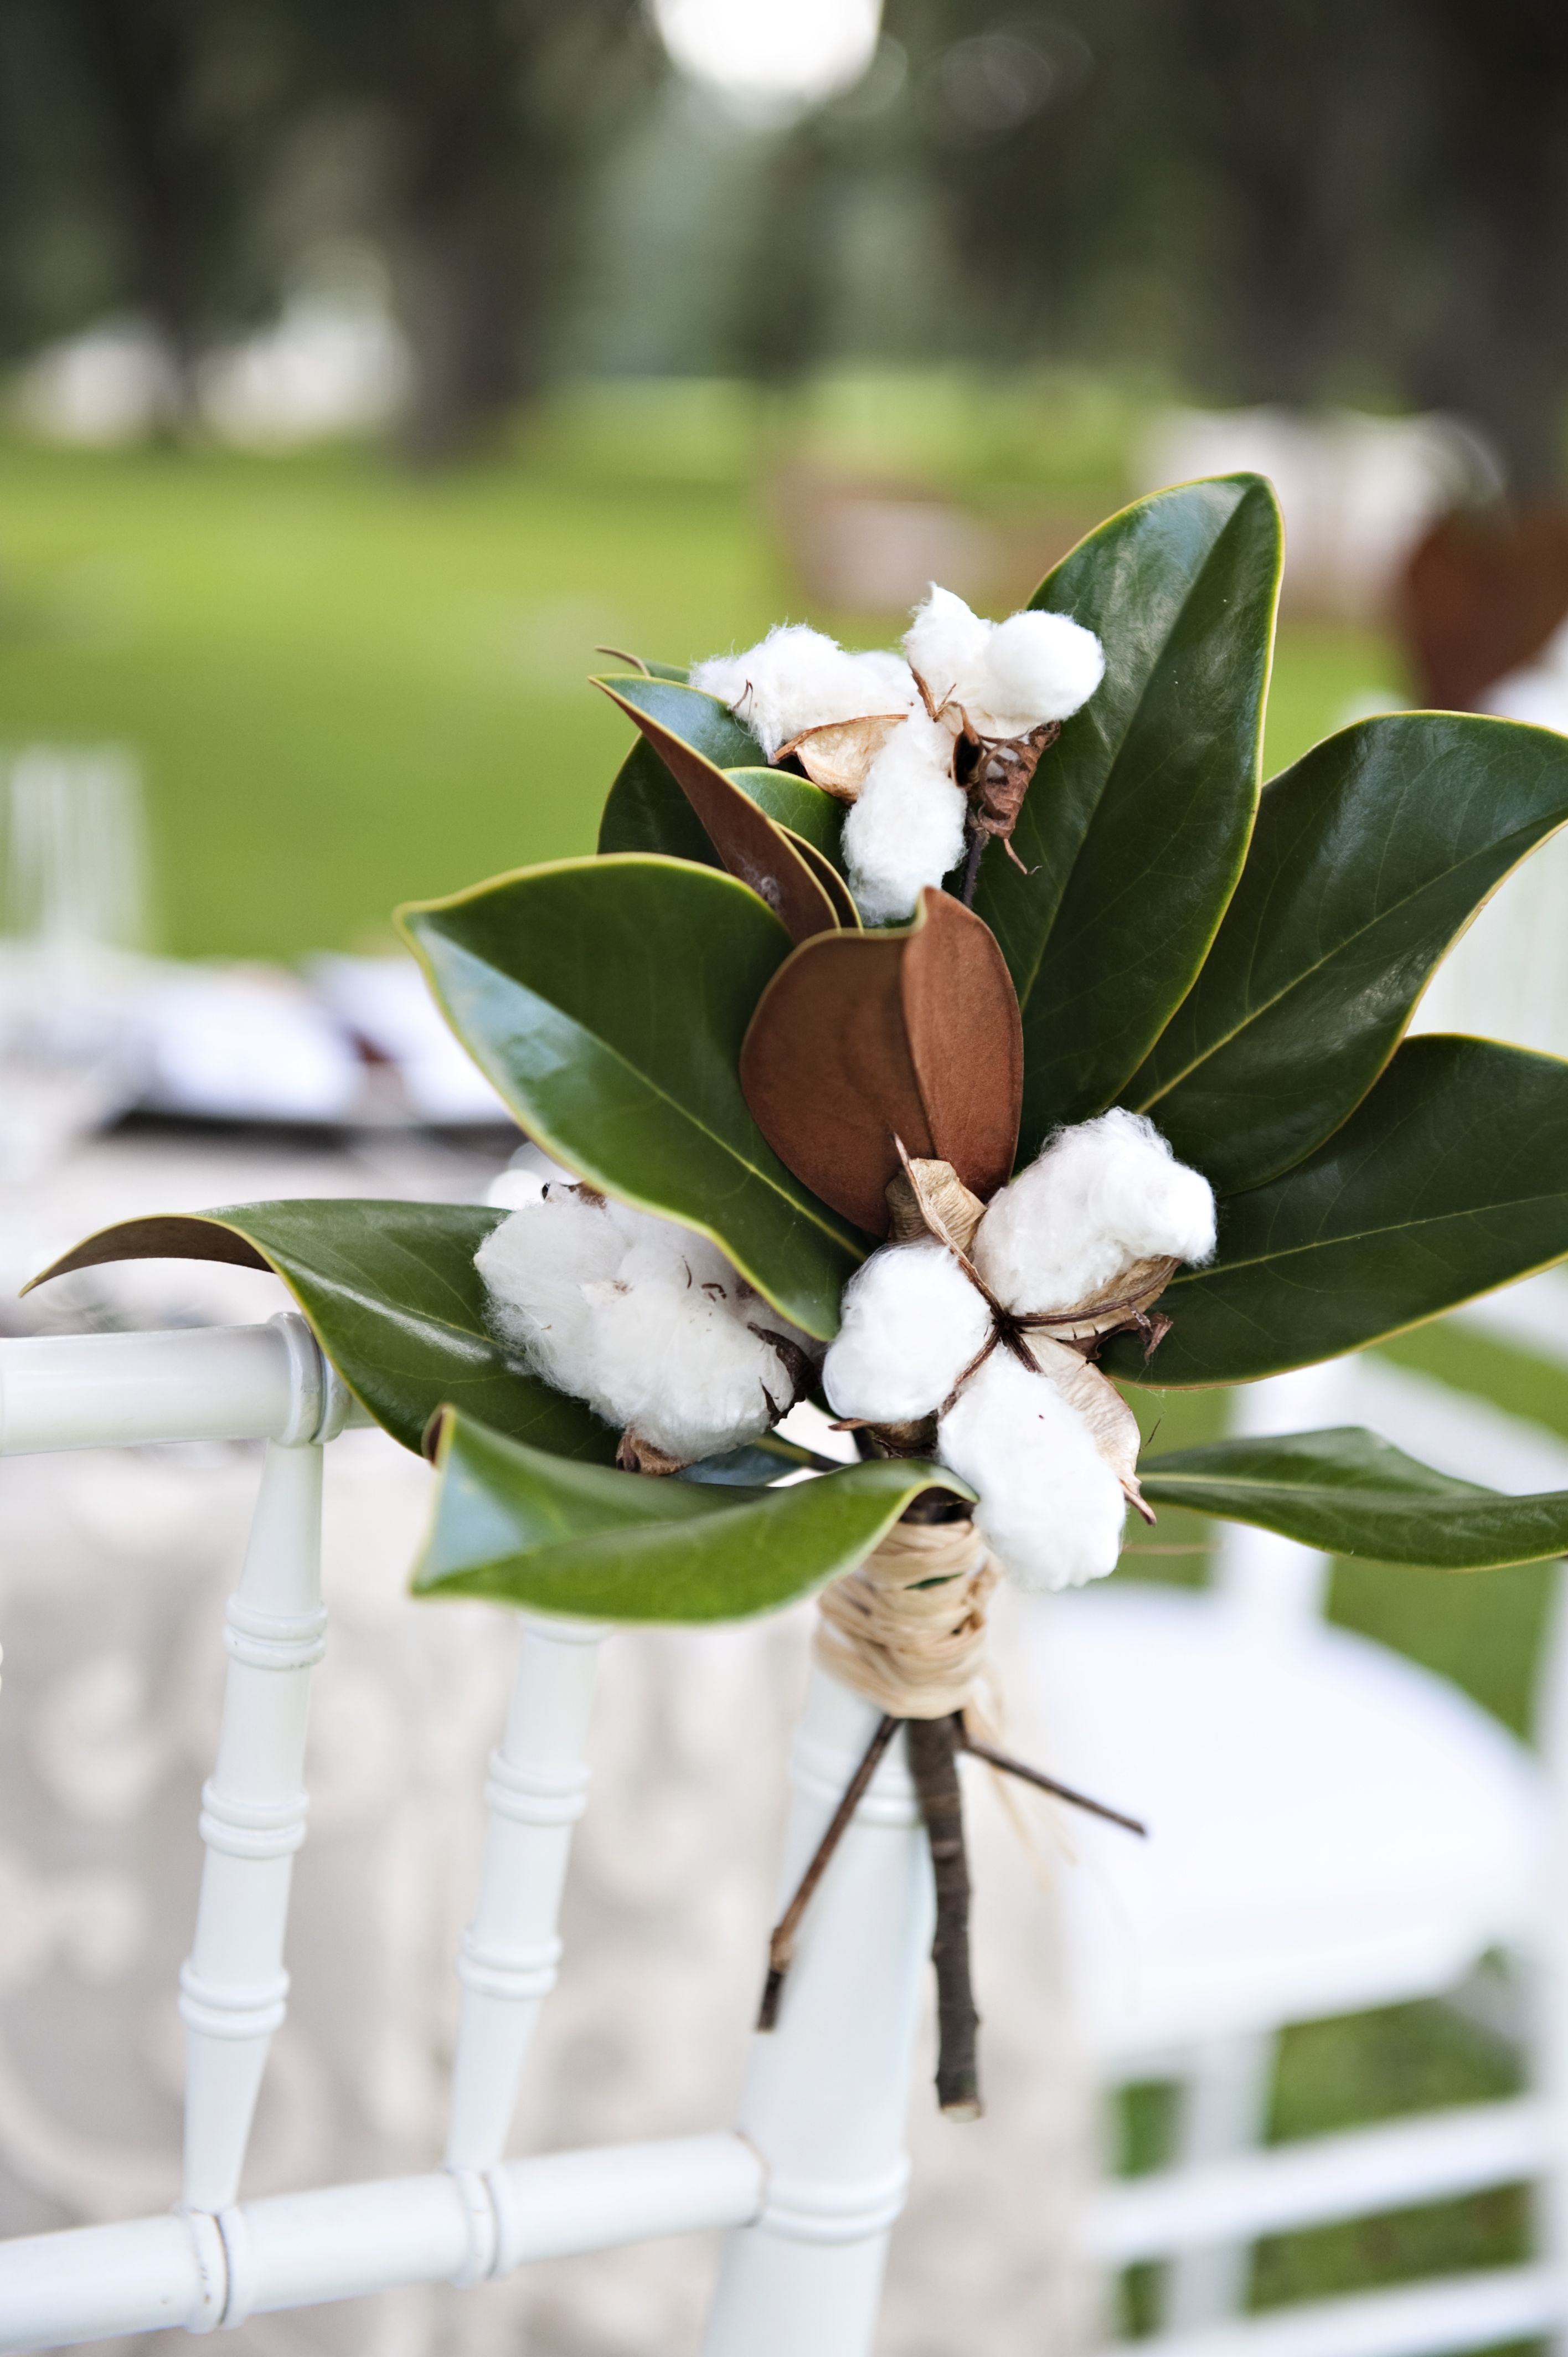 Cotton   Magnolia leaves in a mason jar tied with straw  burlap or     Cotton   Magnolia leaves in a mason jar tied with straw  burlap or lace for  simple centerpieces  50th sign coming up through center